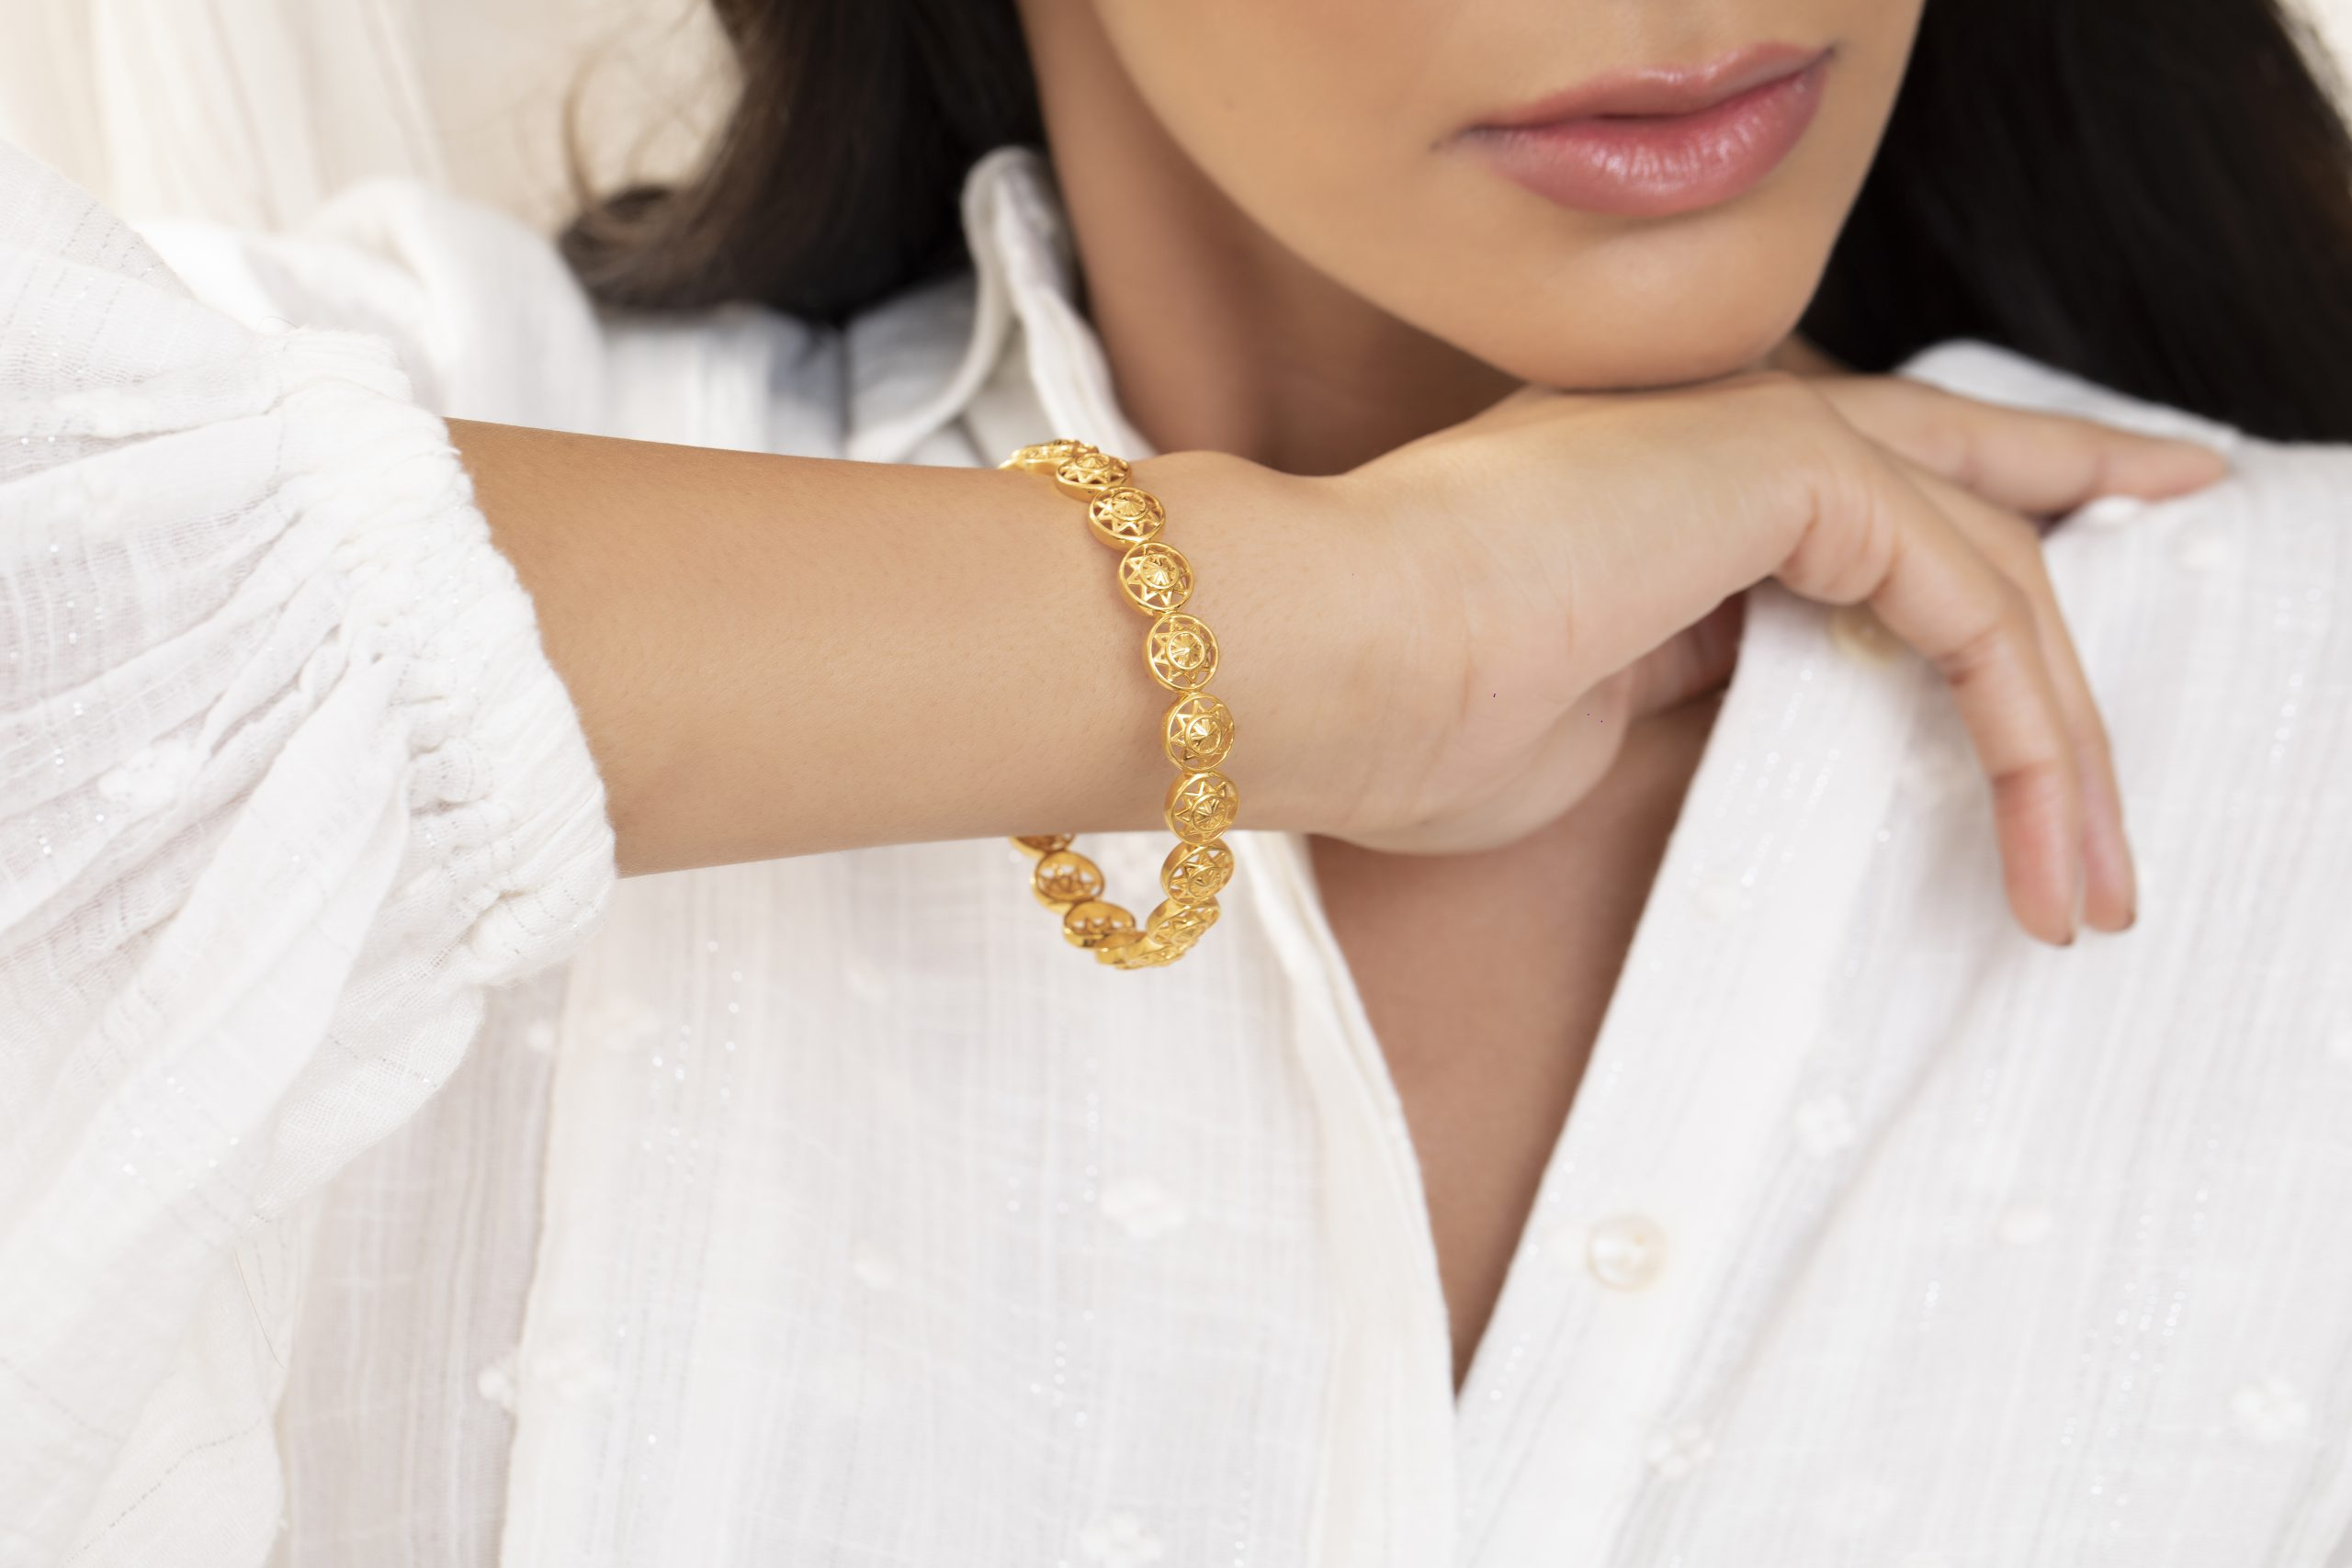 8 reasons why Melorra jewellery is perfect for everyday!